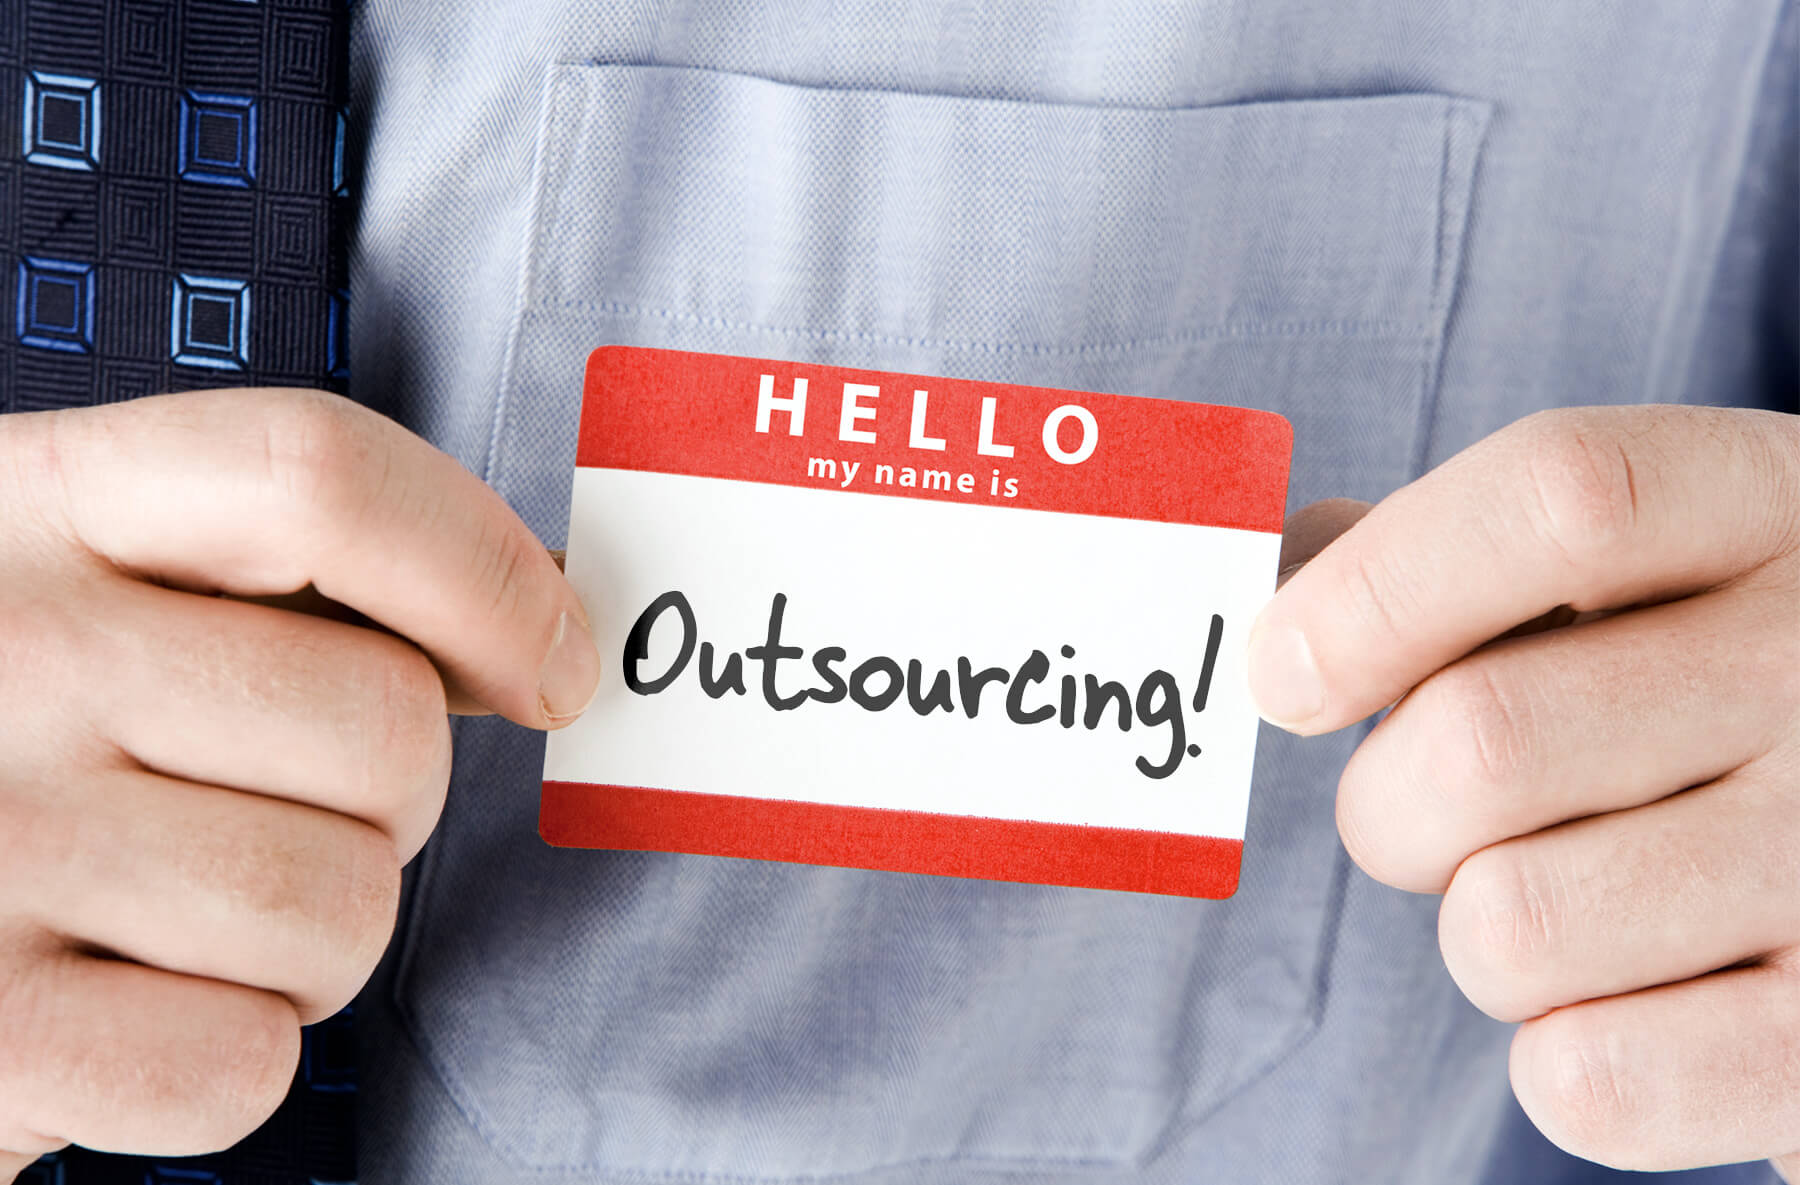 Facility Outsourcing